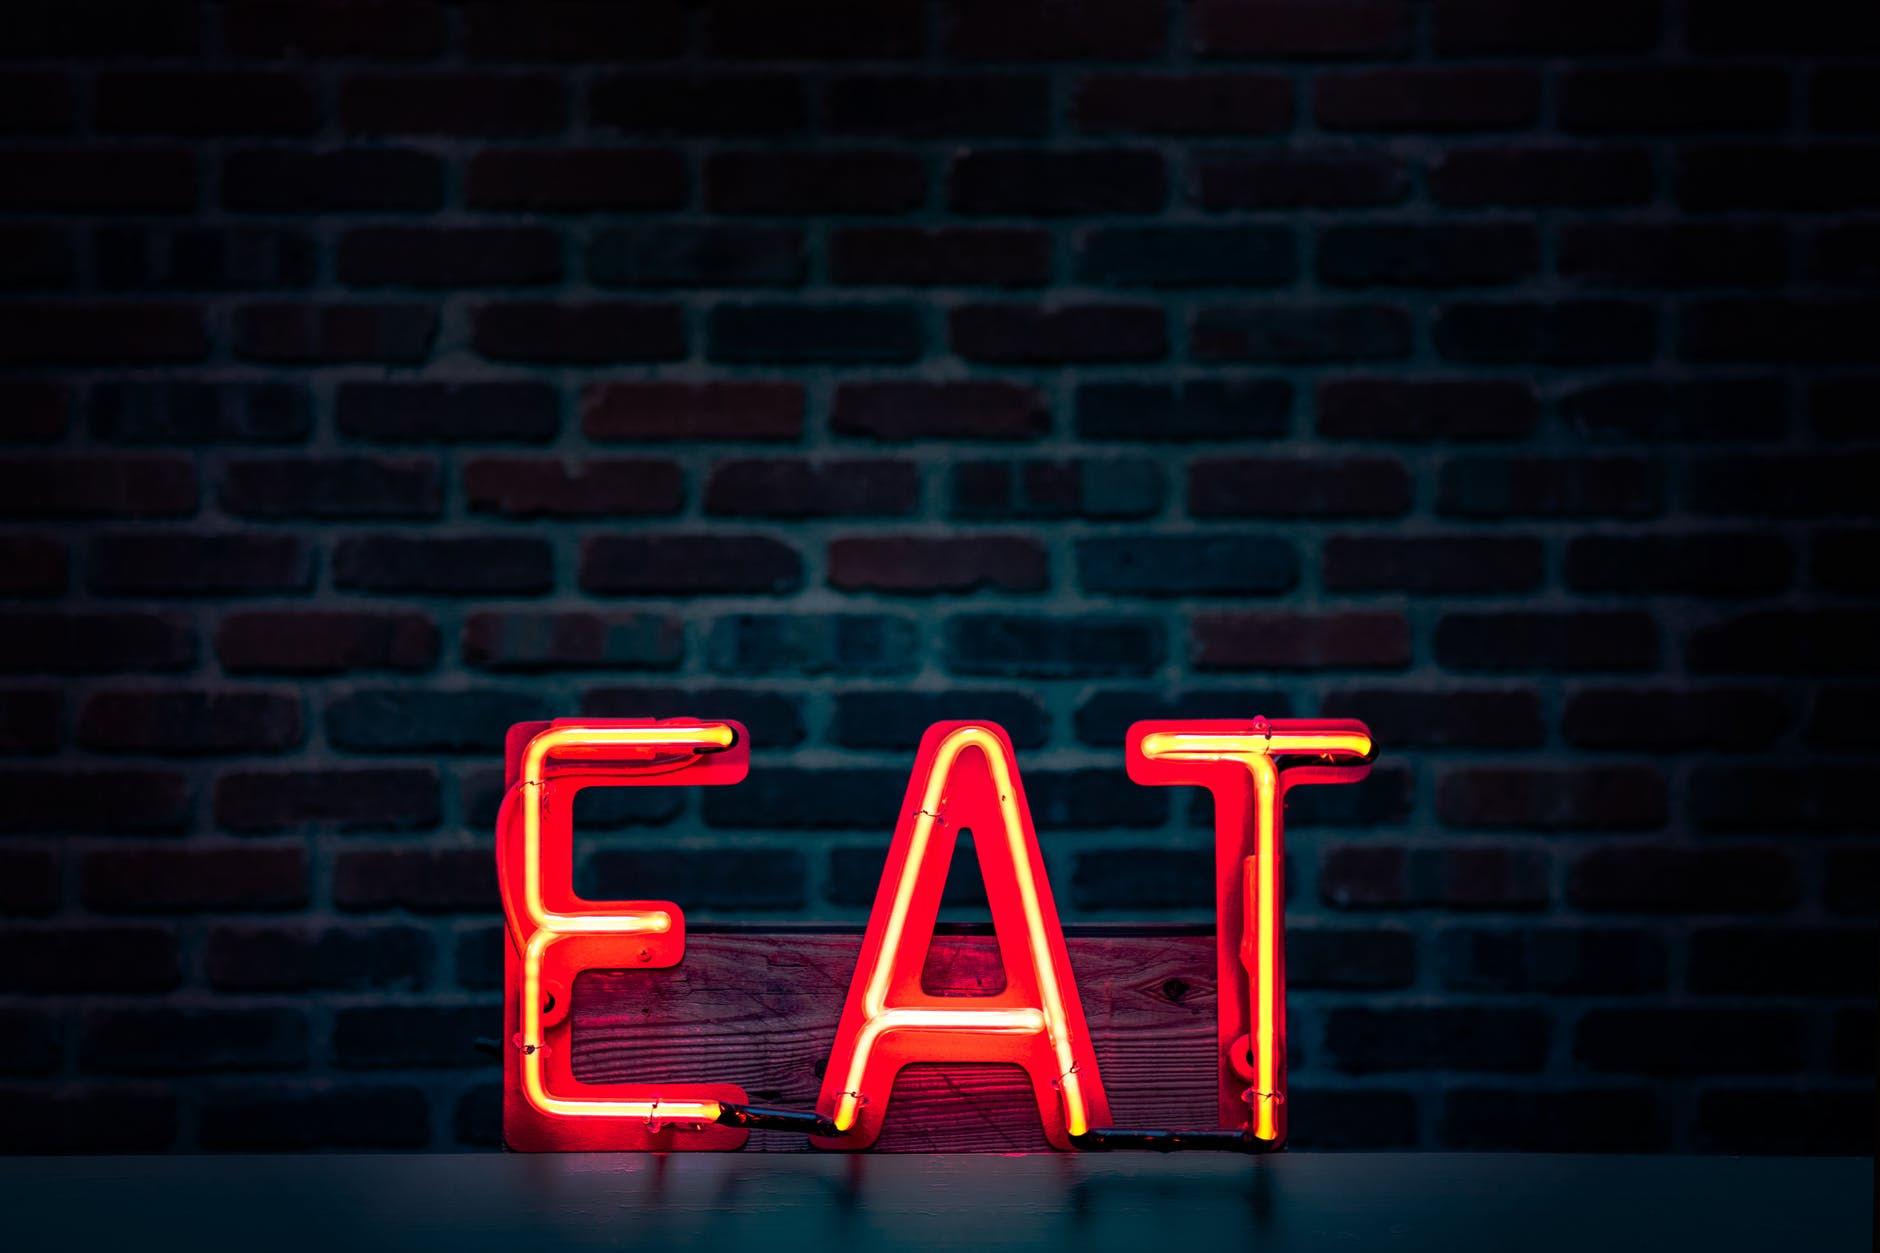 red eat neon sign turned on